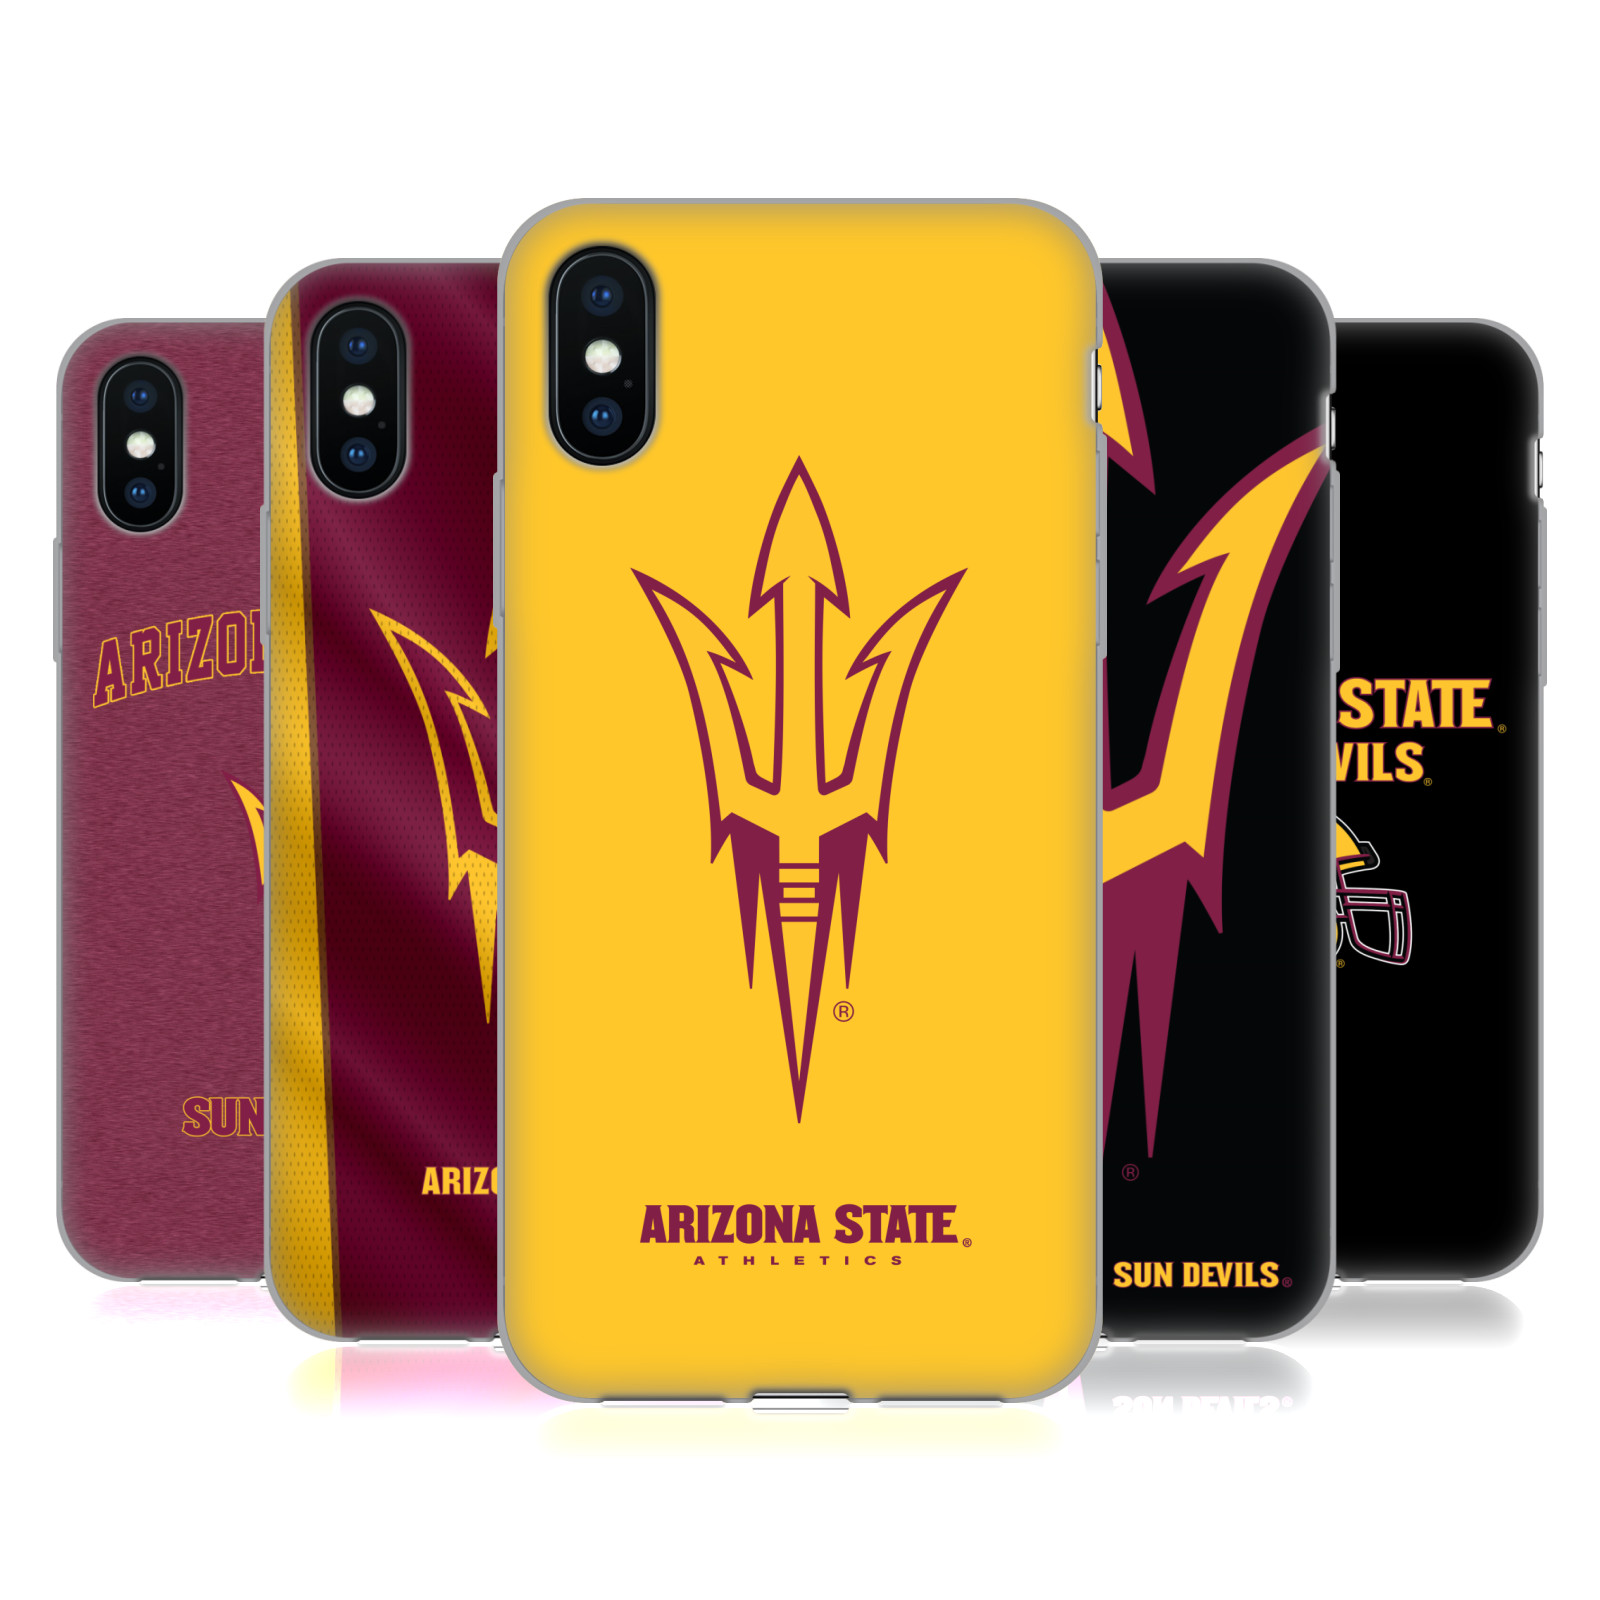 Arizona State University ASU Arizona State University